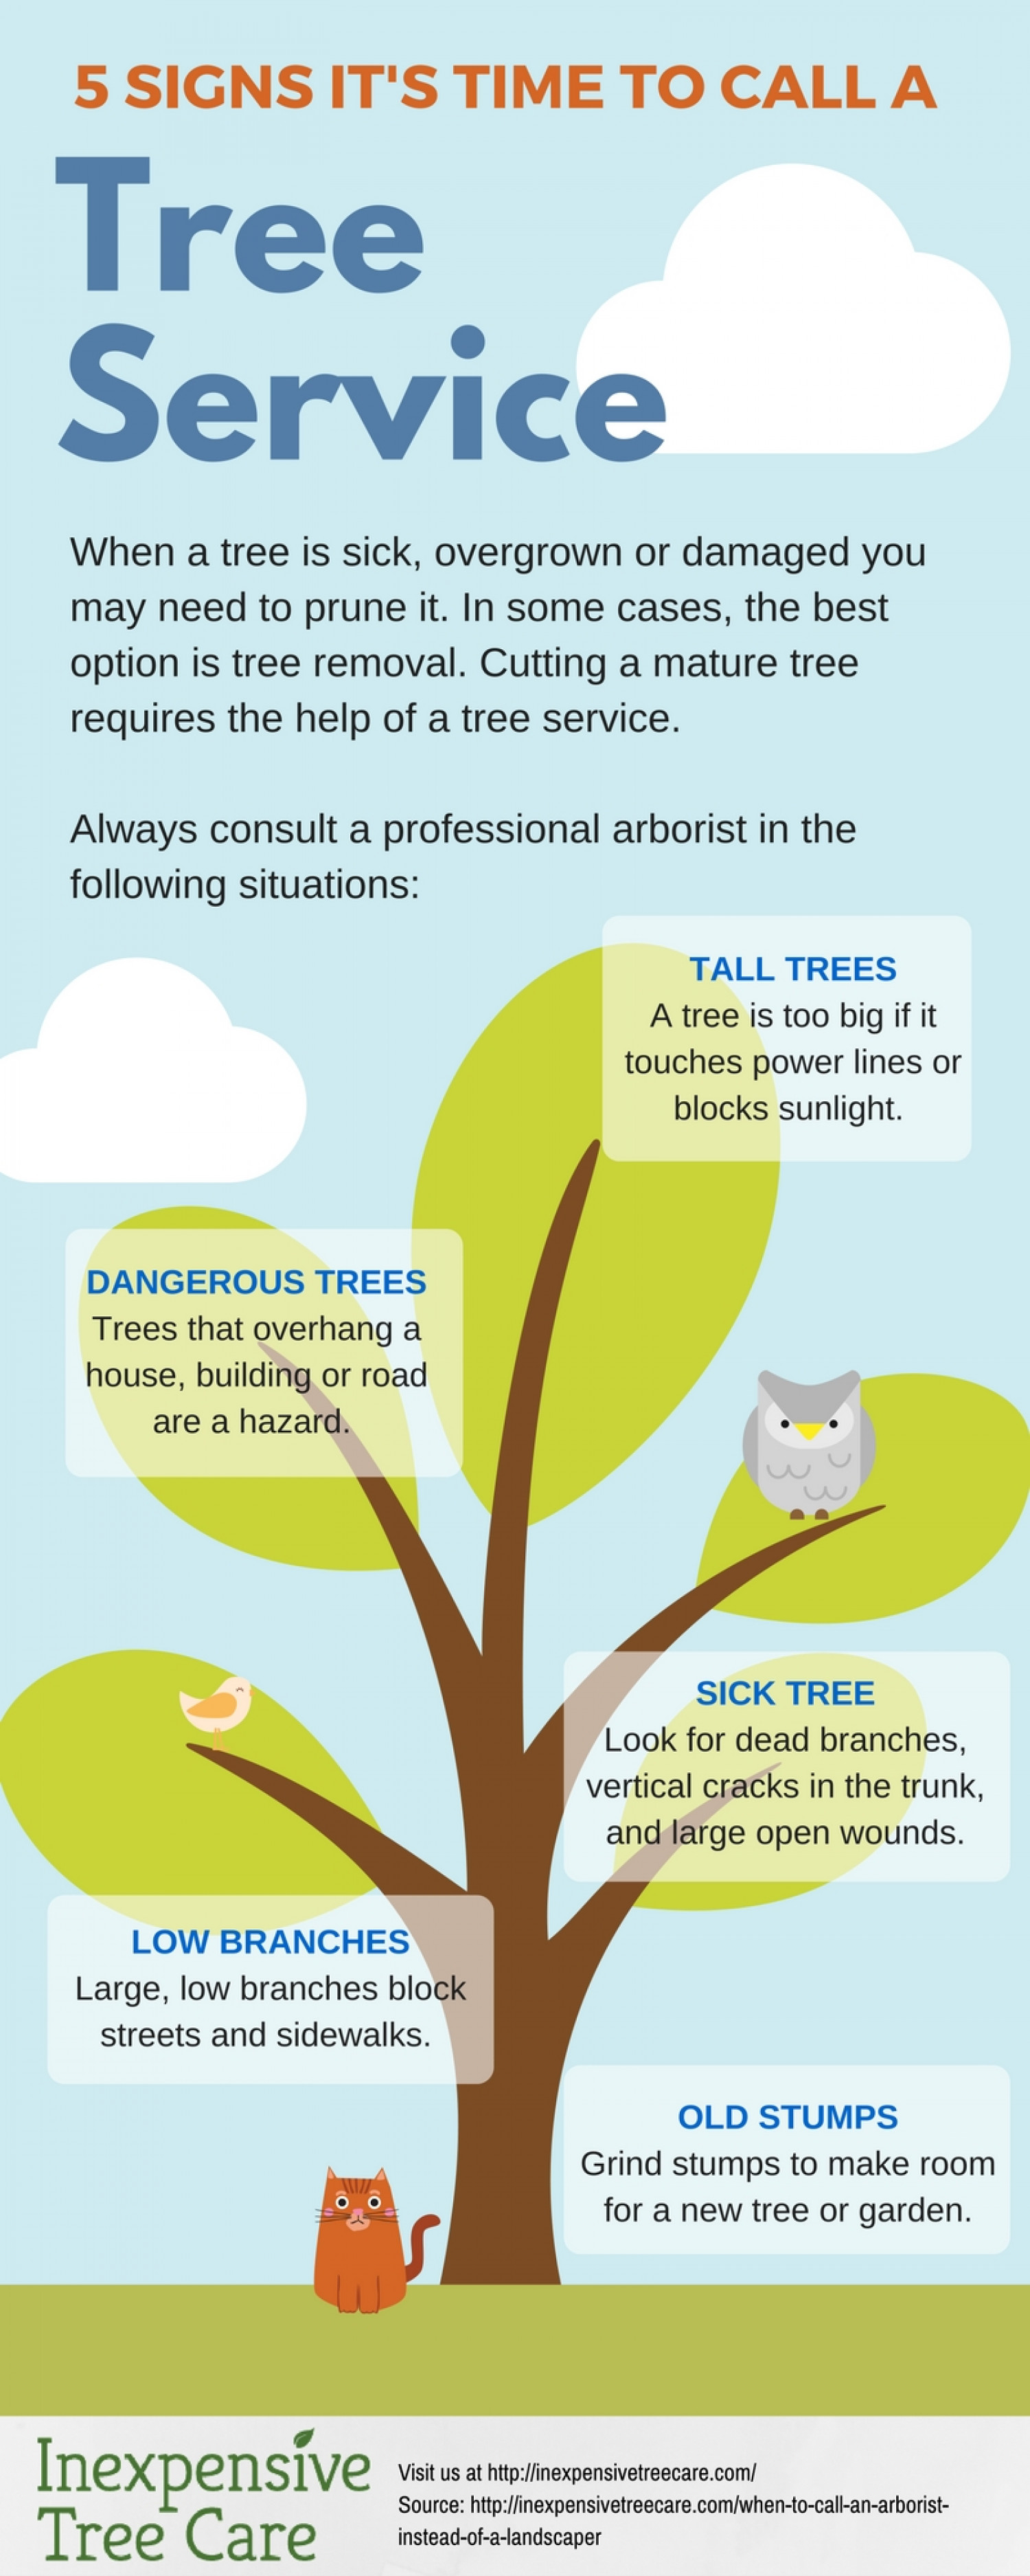 5 Signs It's Time to Call a Tree Service Infographic